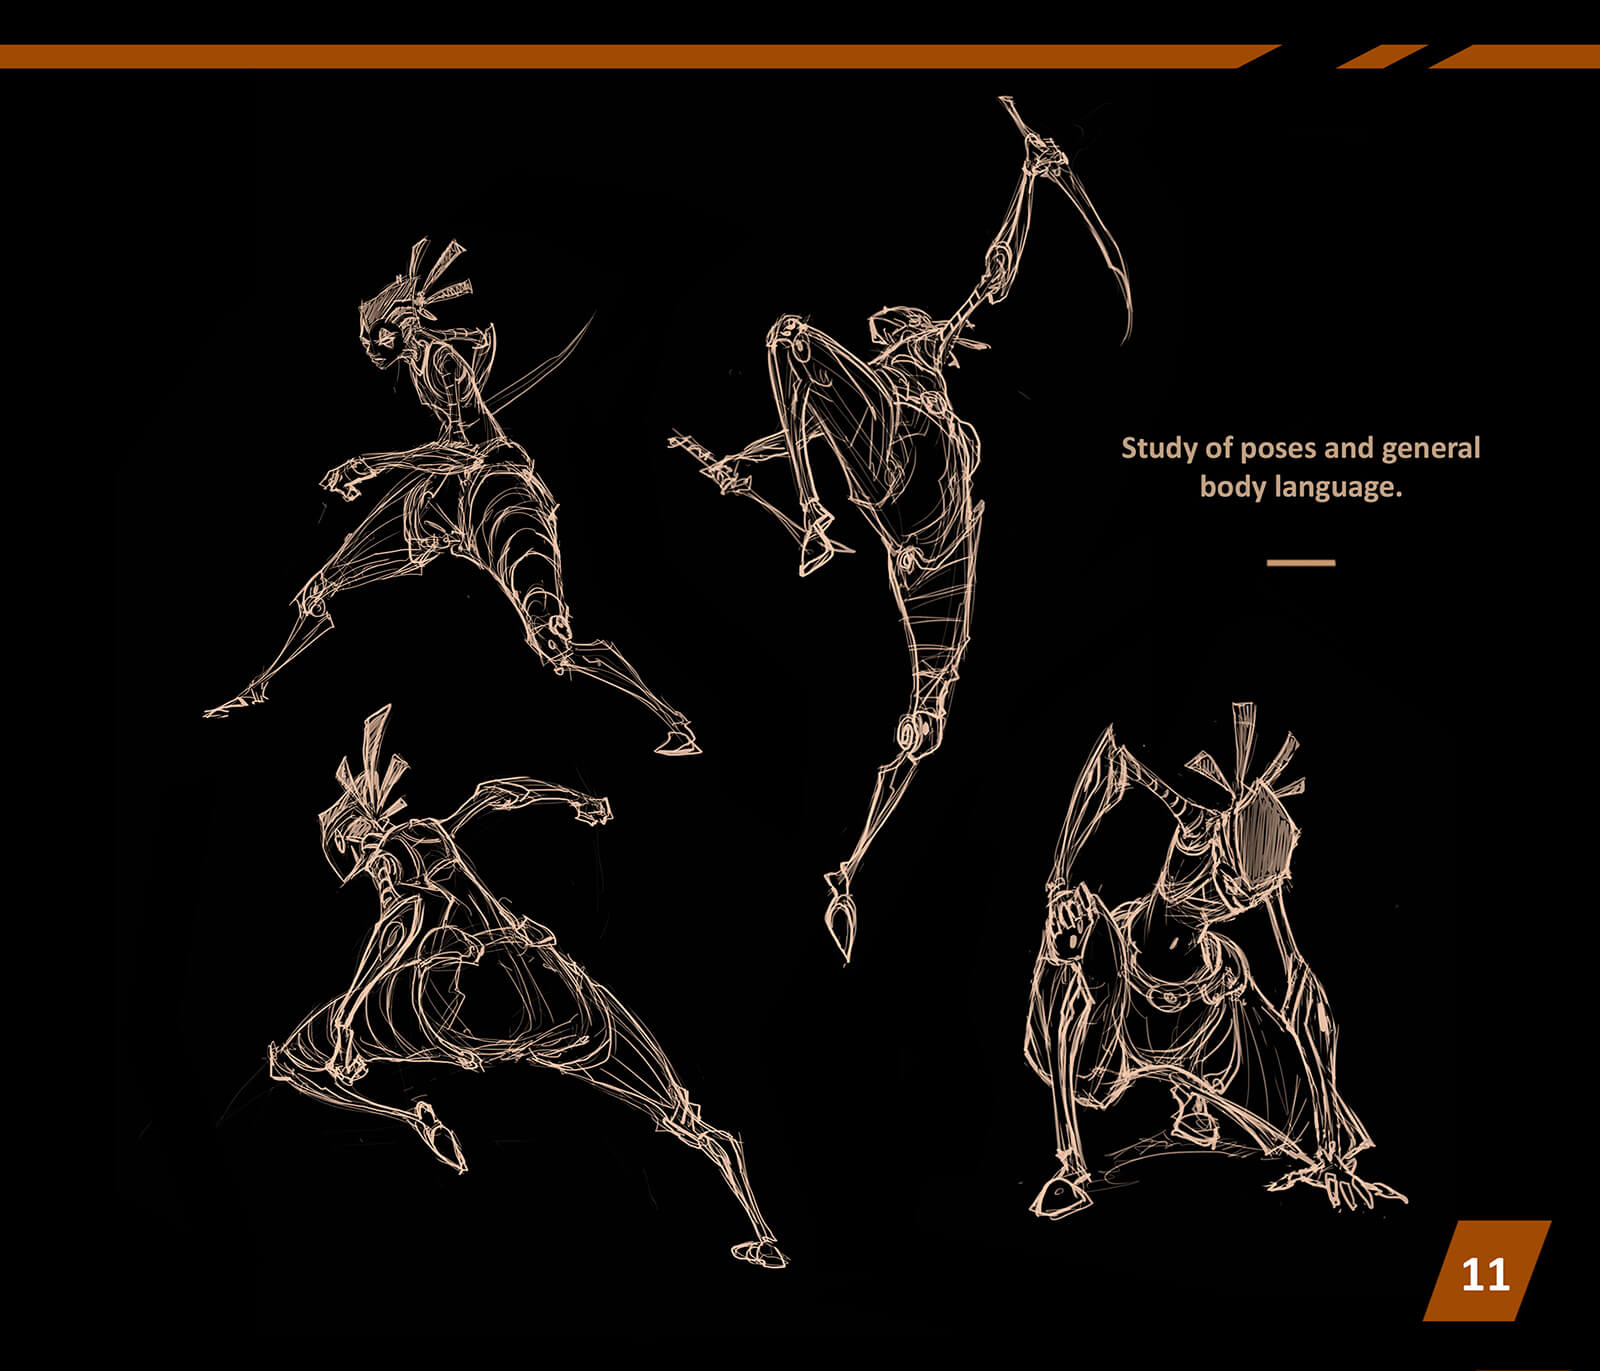 Sketches of a character in various mid-battle poses, bracing, crouching, and flying through the air with swords drawn